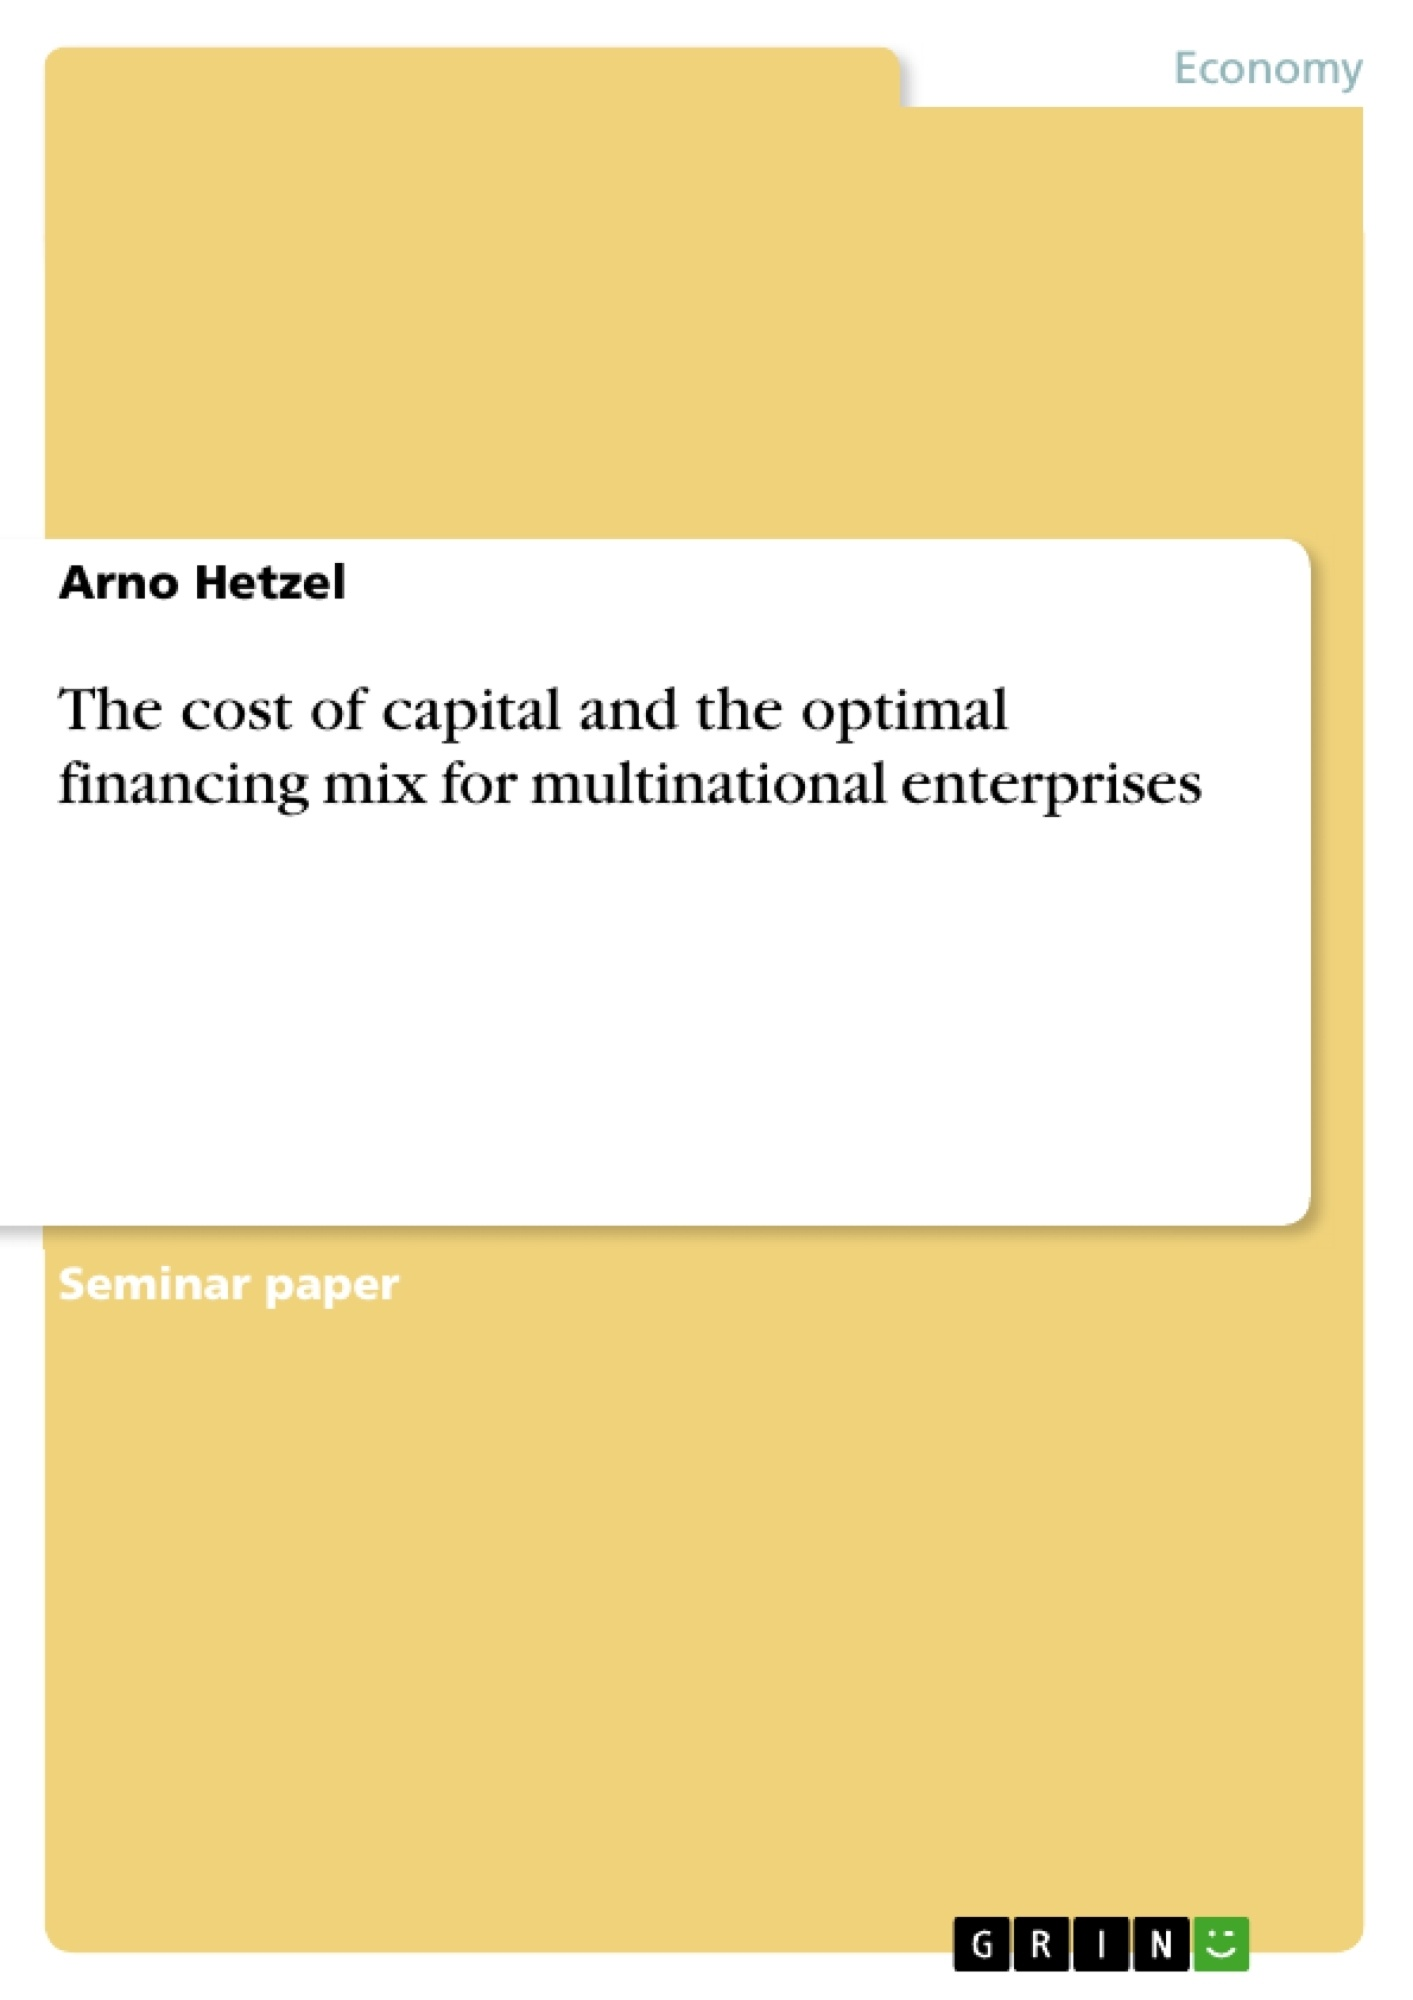 Title: The cost of capital and the optimal financing mix for multinational enterprises